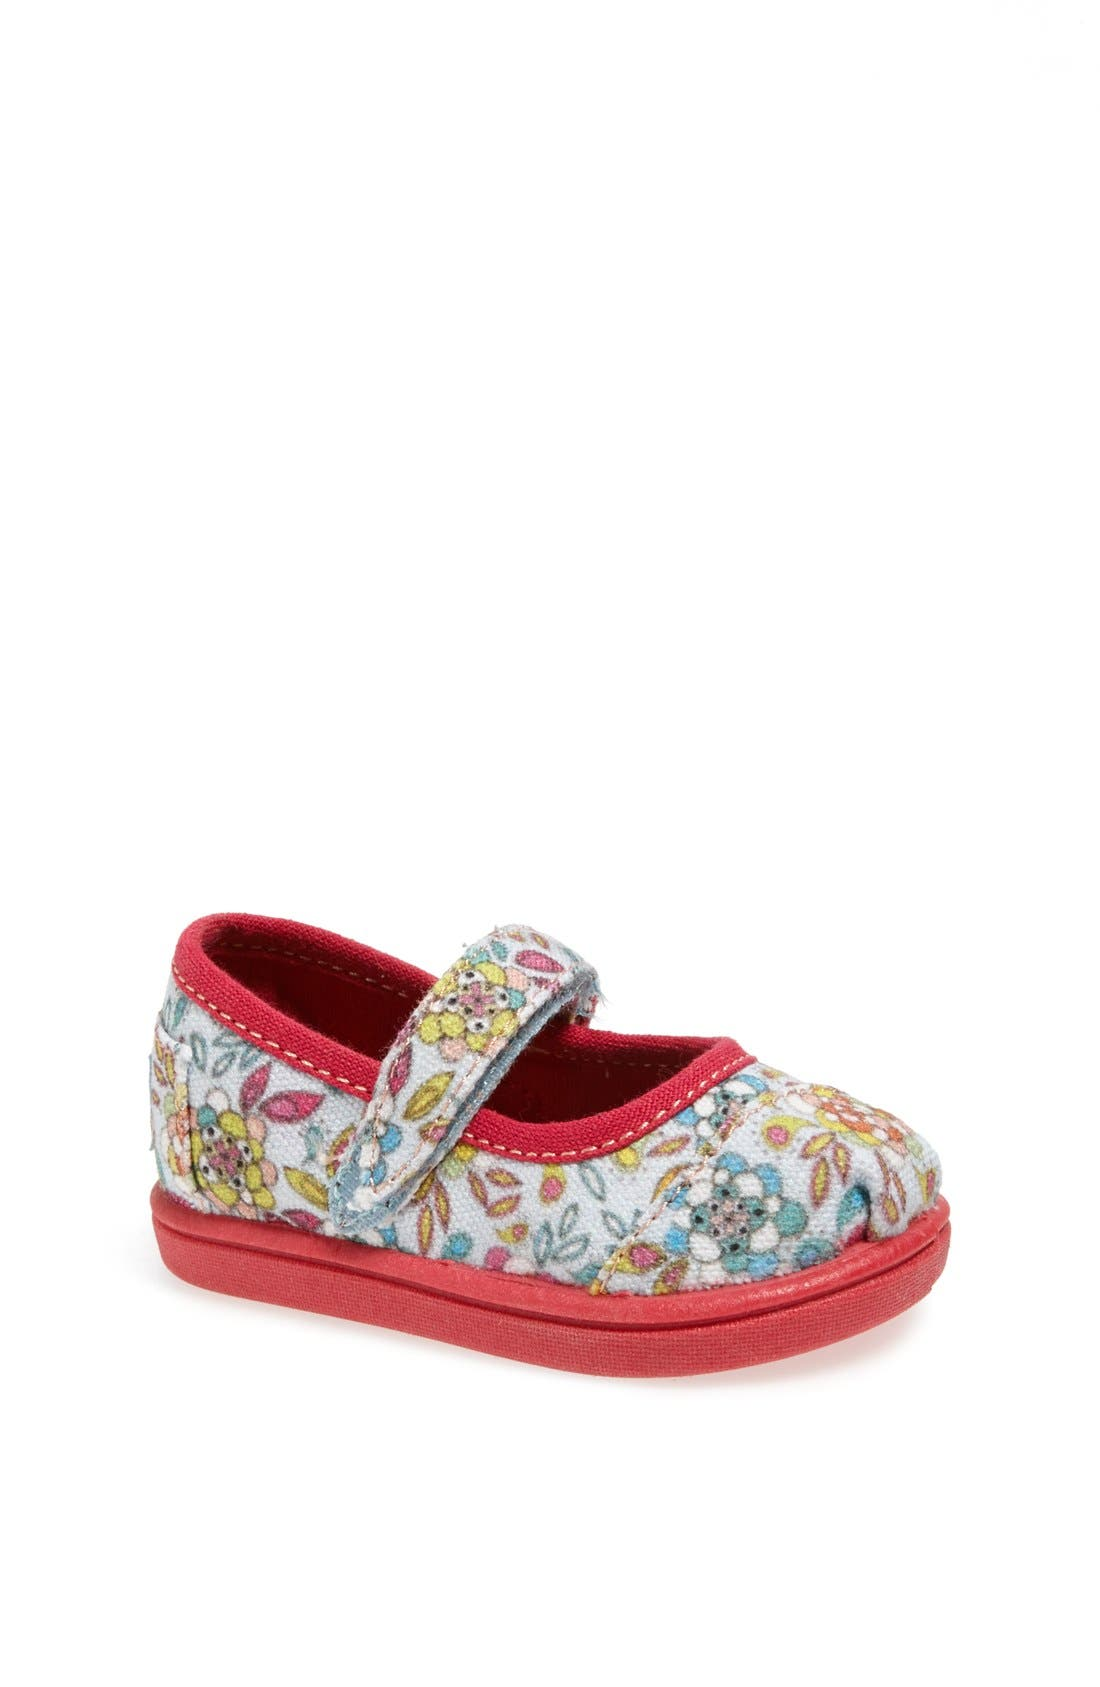 Main Image - TOMS 'Tiny - Inked Floral' Mary Jane Flat (Baby, Walker & Toddler)